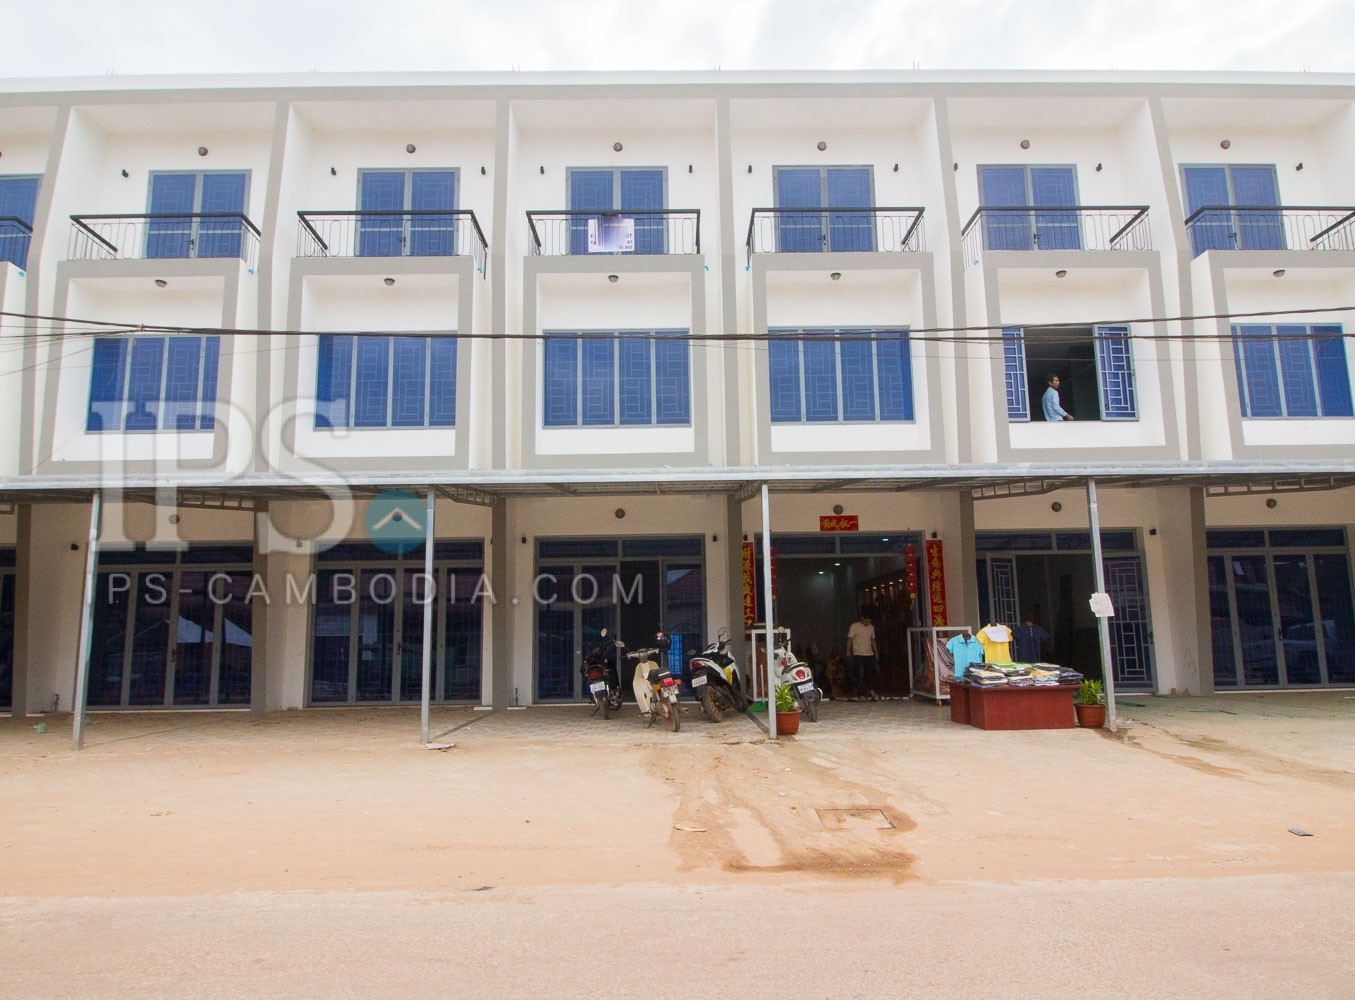 4 Bedroom Flat House For Sale - Svay Dangkum, Siem Reap